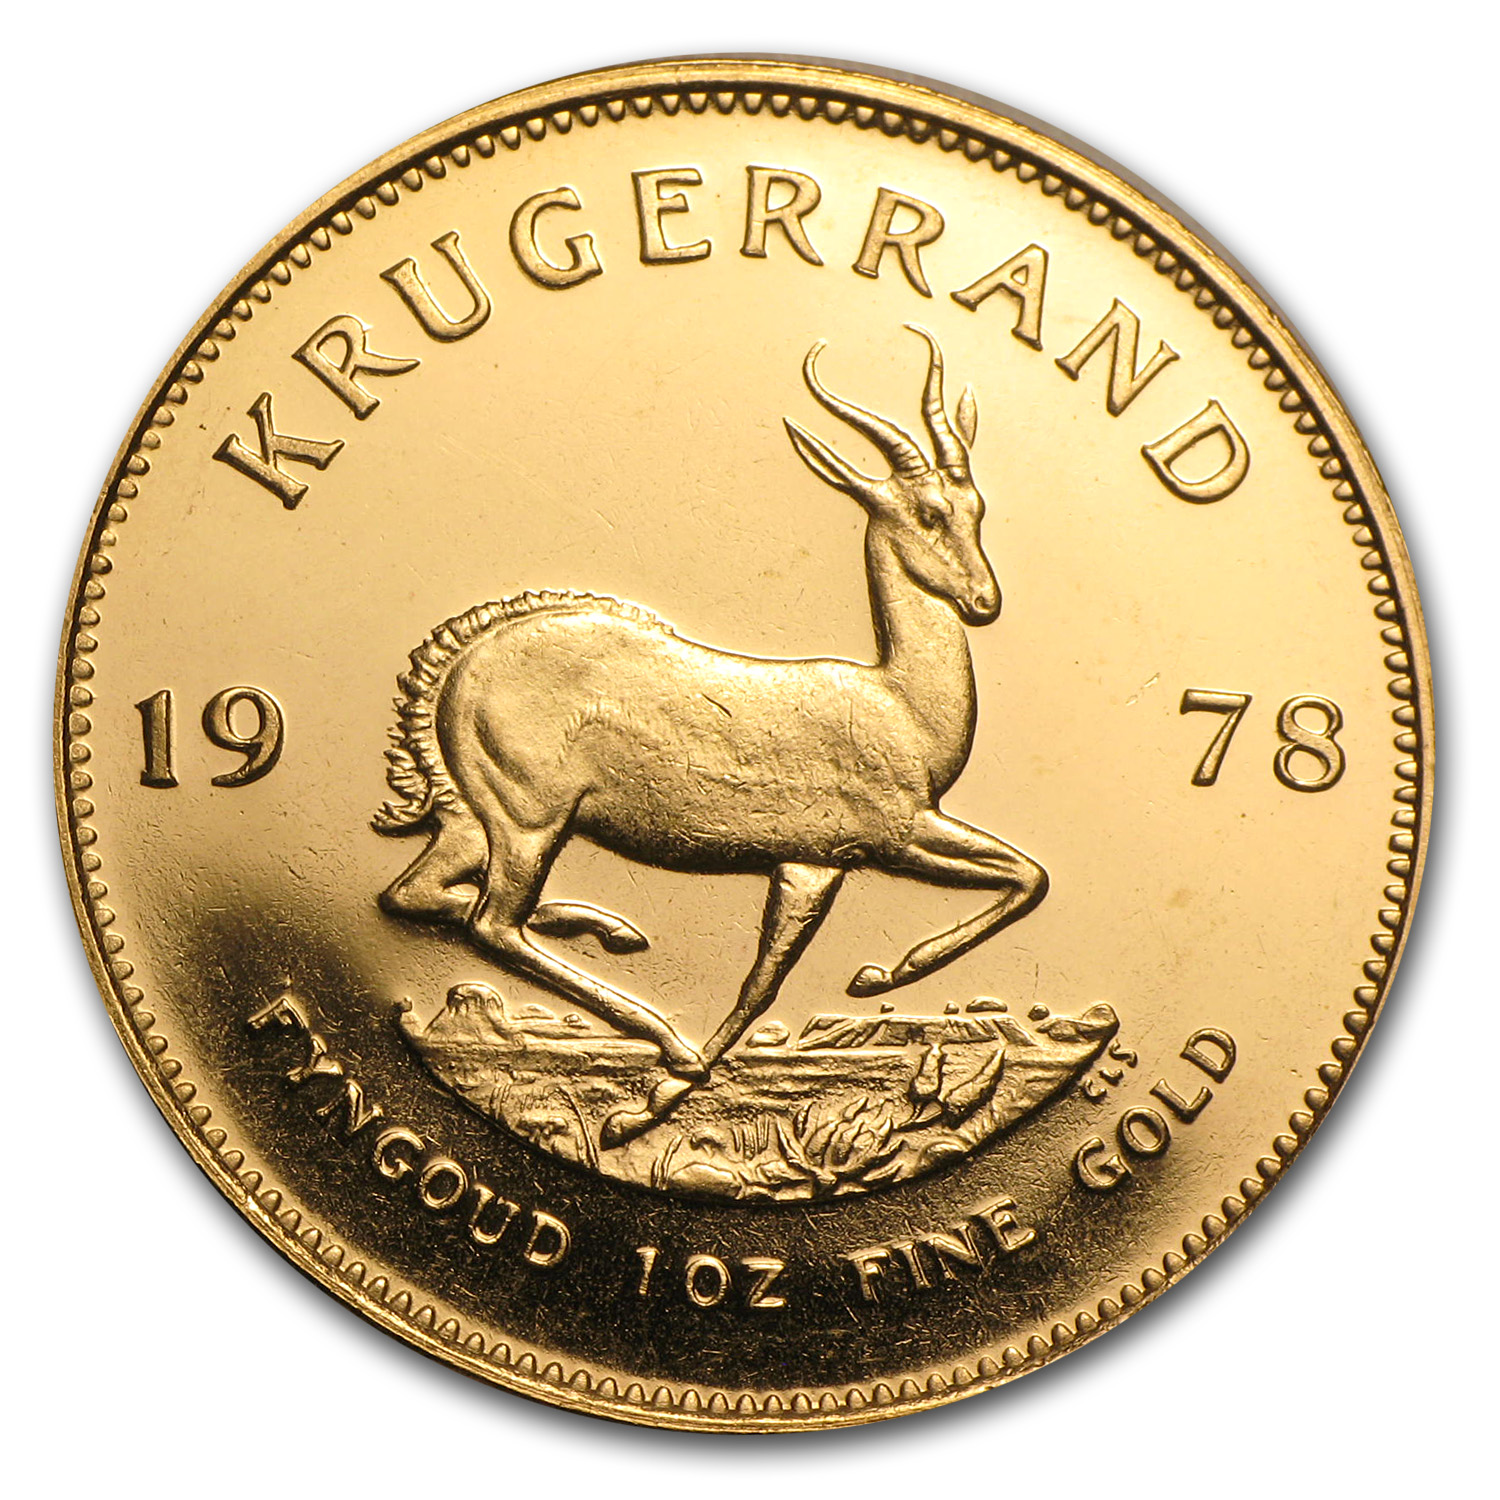 1978 South Africa 1 oz Gold Krugerrand